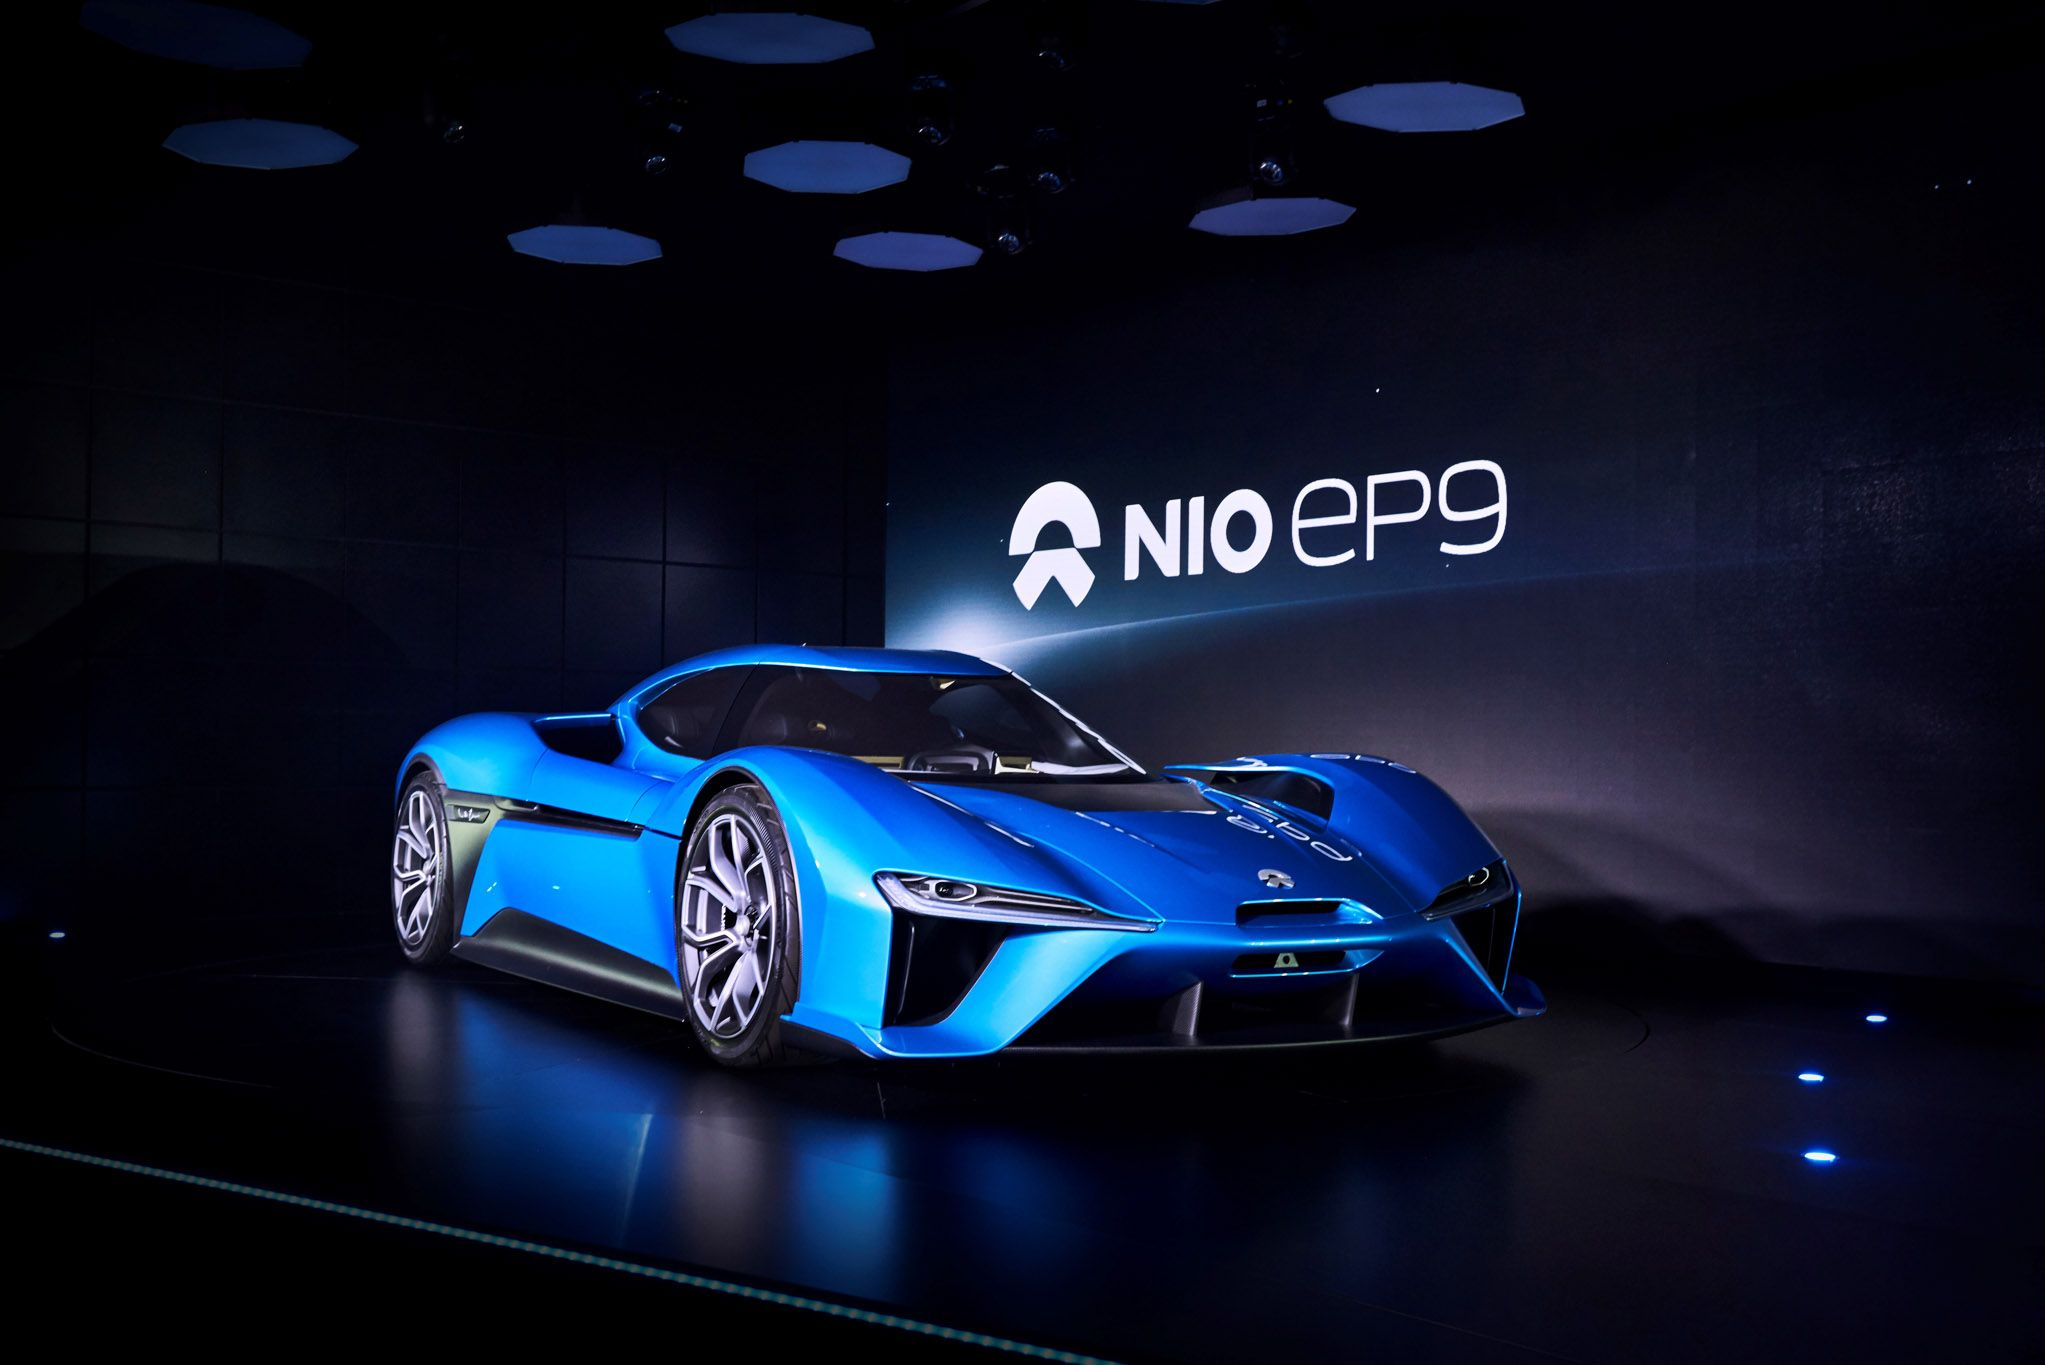 NIO EP9 Sets WorldRecord Nürburgring EV Lap Time (With